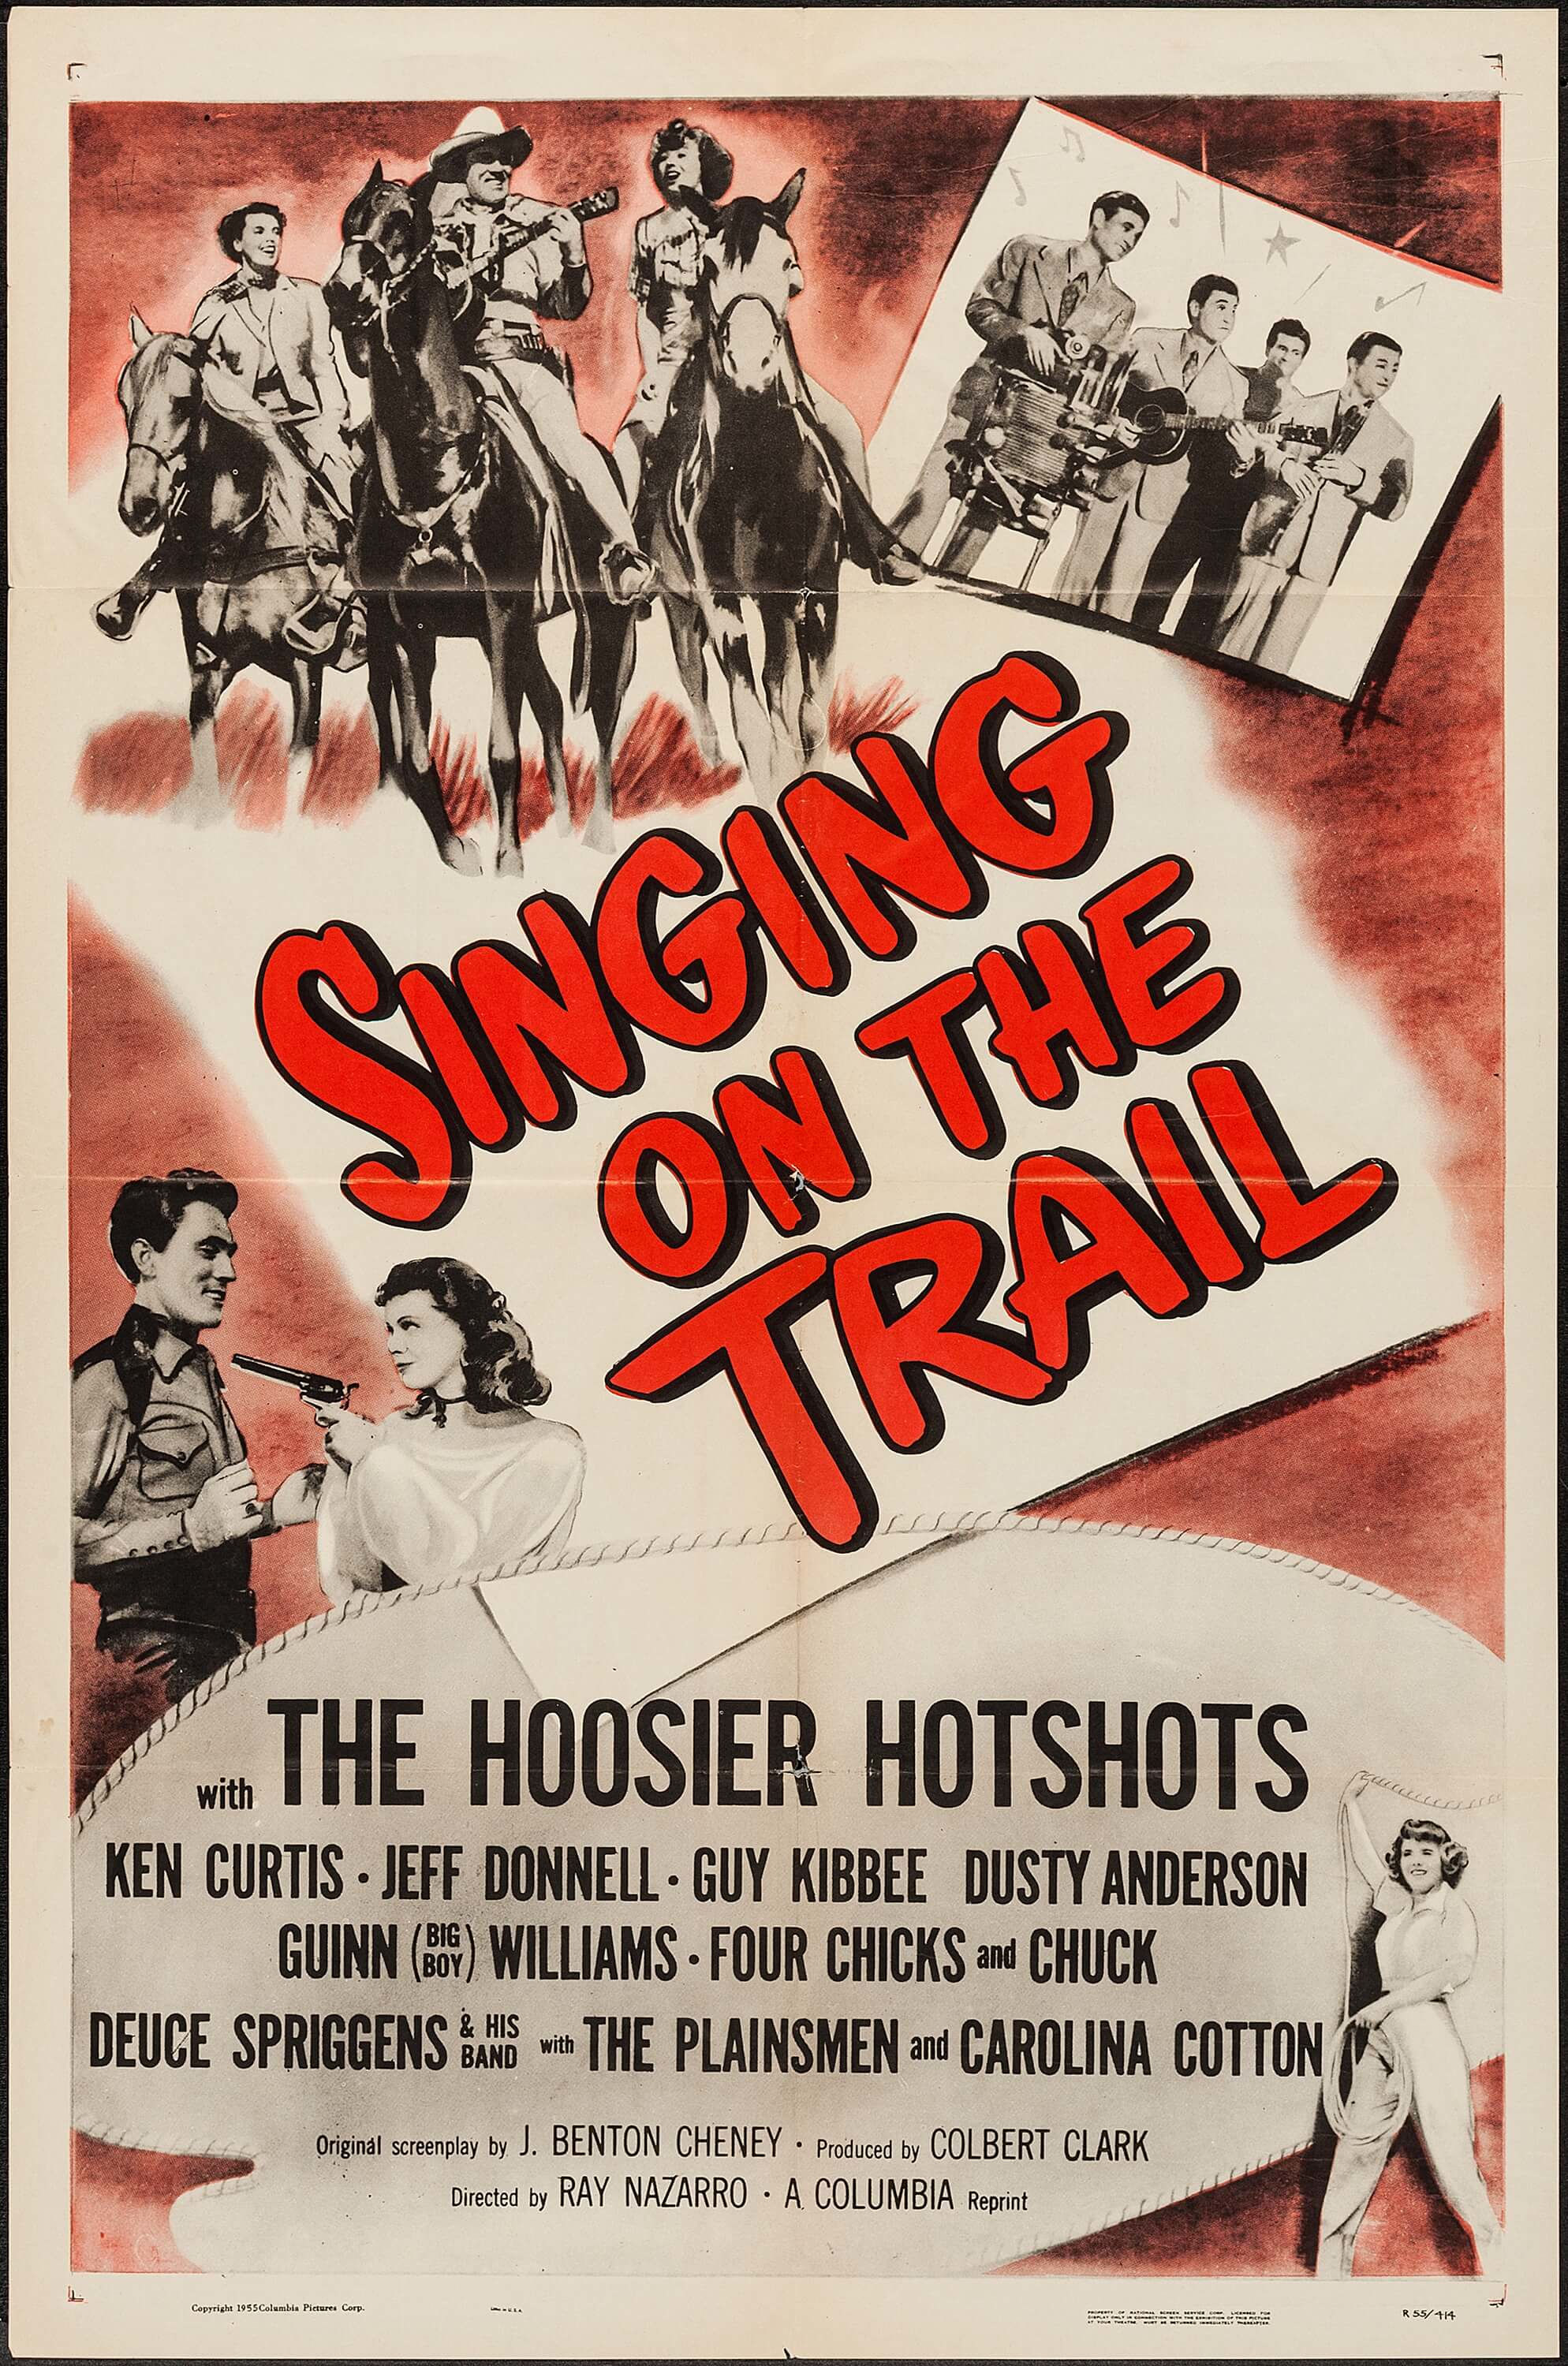 Dusty Anderson, Ken Curtis, Jeff Donnell, Gil Taylor, Paul Trietsch, Ken Trietsch, Charles Ward, and The Hoosier Hotshots in Singing on the Trail (1946)